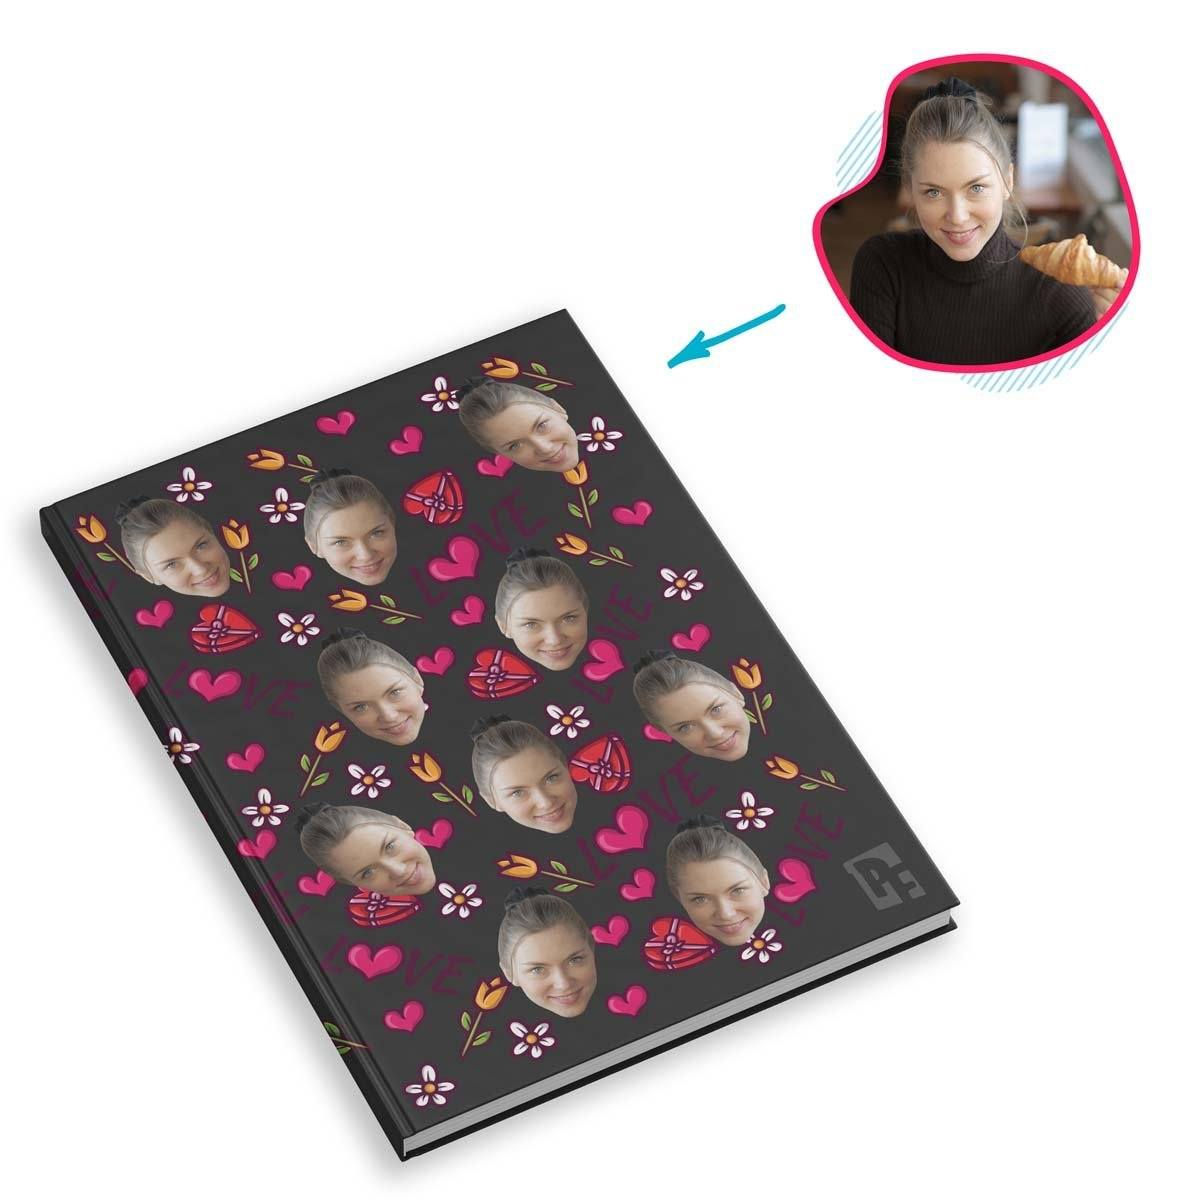 dark Hearts and Flowers Notebook personalized with photo of face printed on them